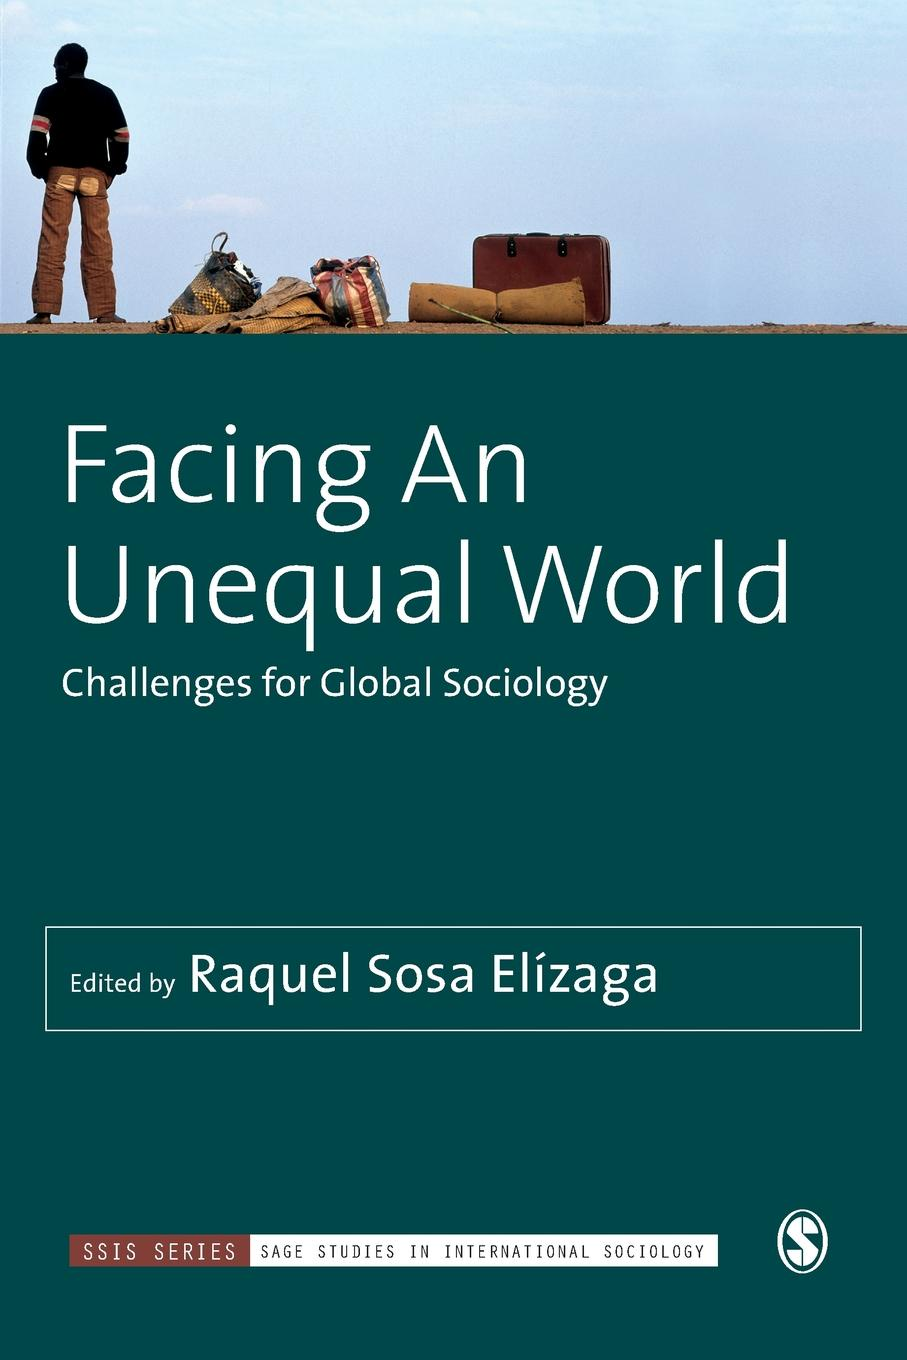 Facing An Unequal World. Challenges for Global Sociology